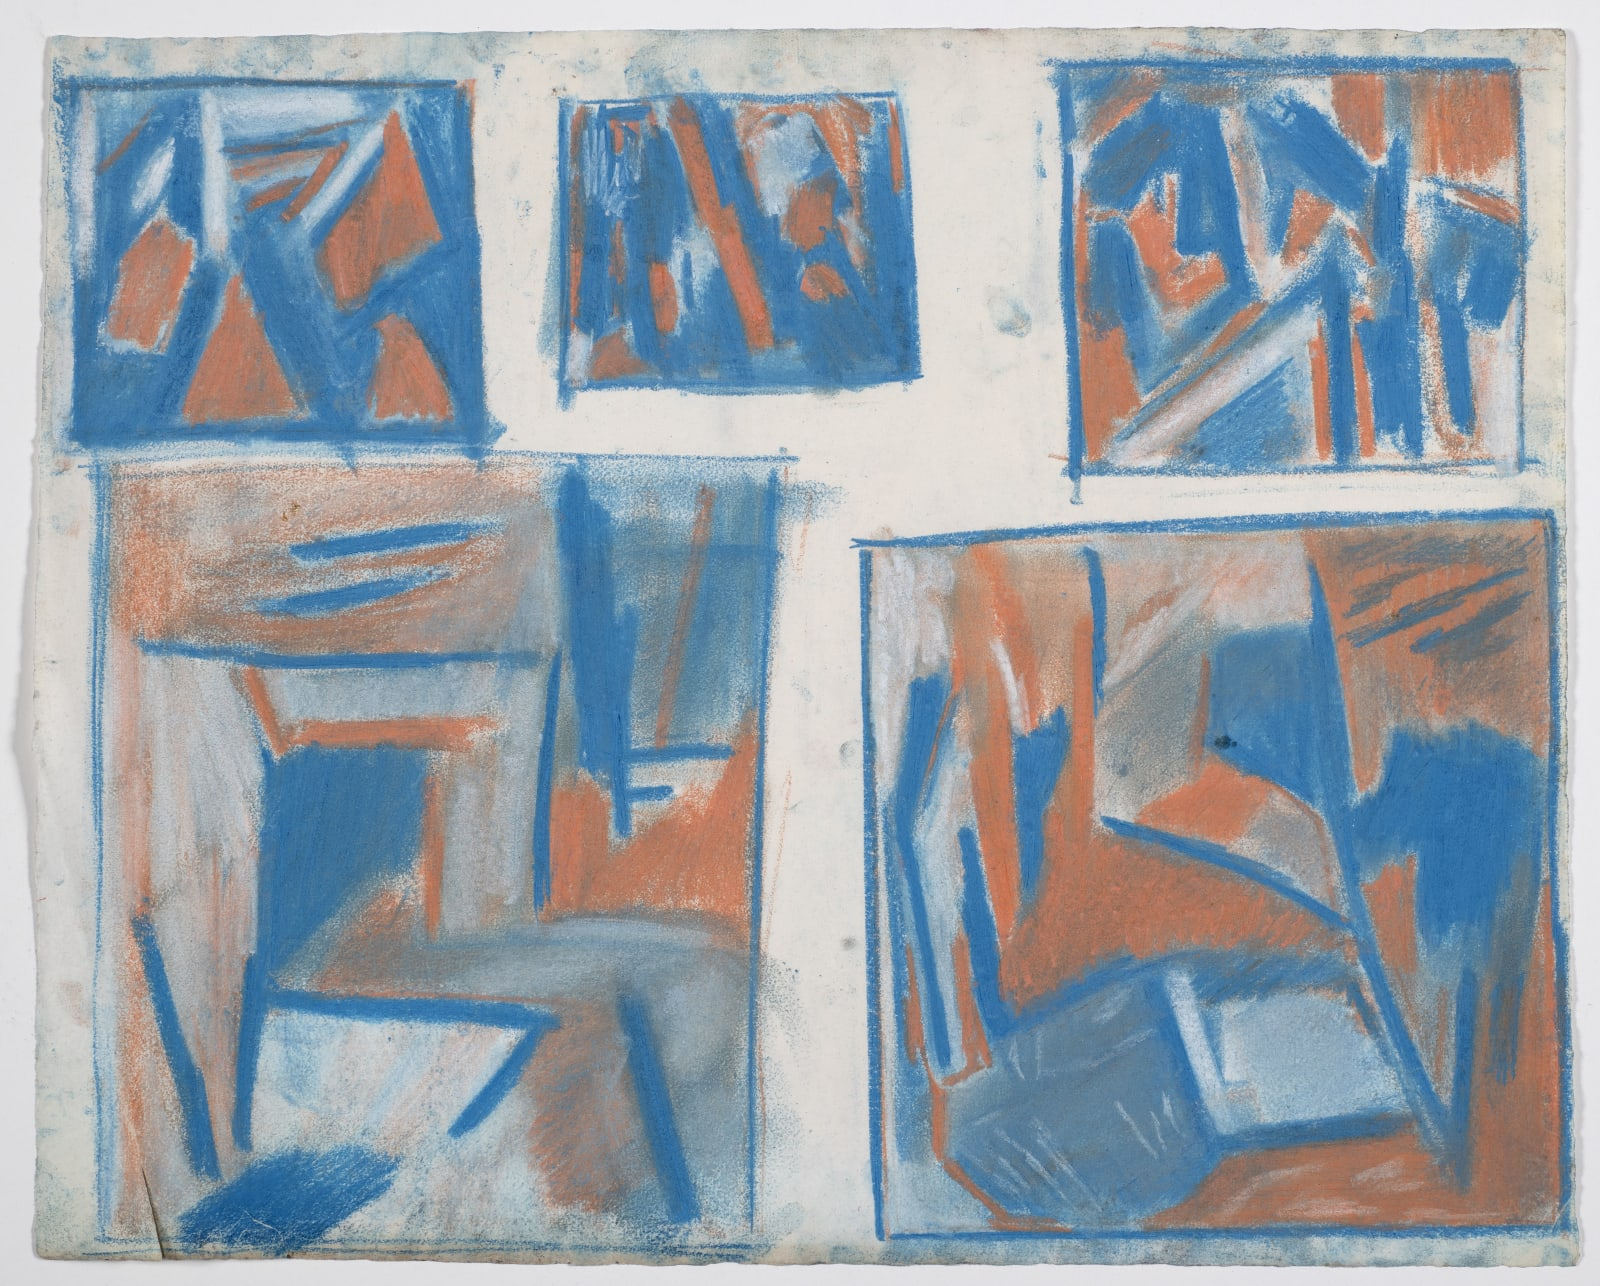 Study for paintings on mild steel, 1958-59 Coloured chalk on paper 43 x 53cm The Gustav Metzger Foundation